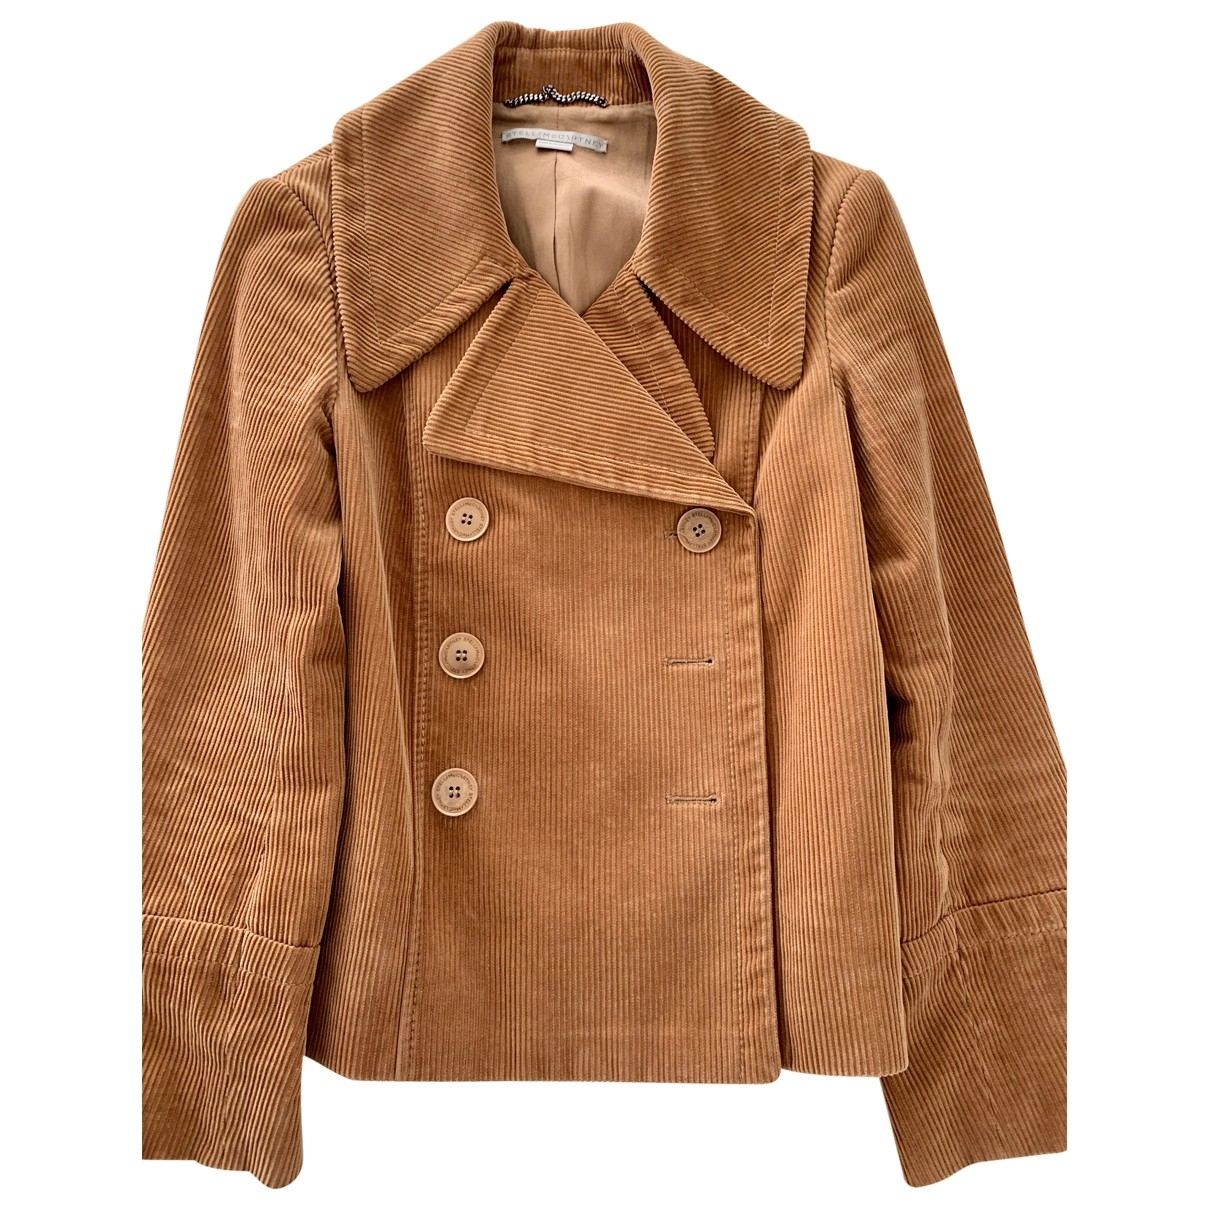 Stella Mccartney \N Camel jacket for Women M International